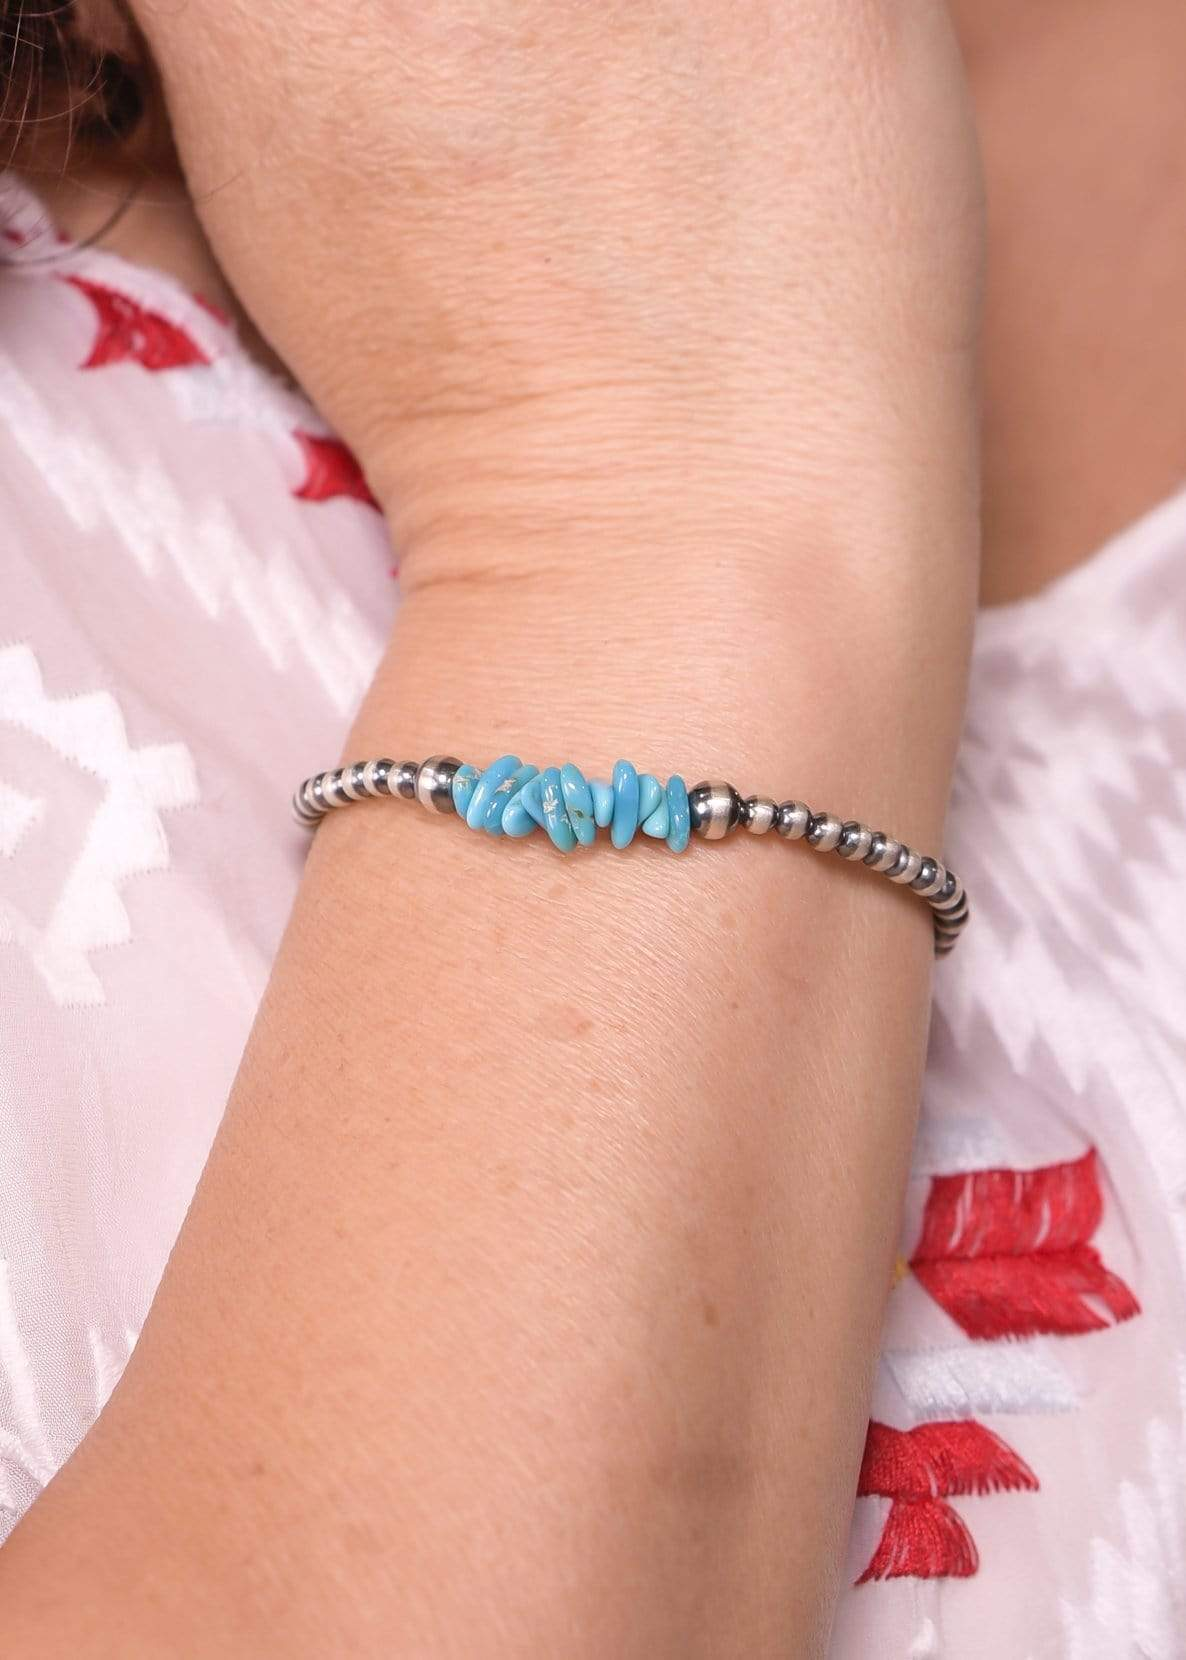 4mm Navajo Pearl Bracelet with Turquoise Detailing